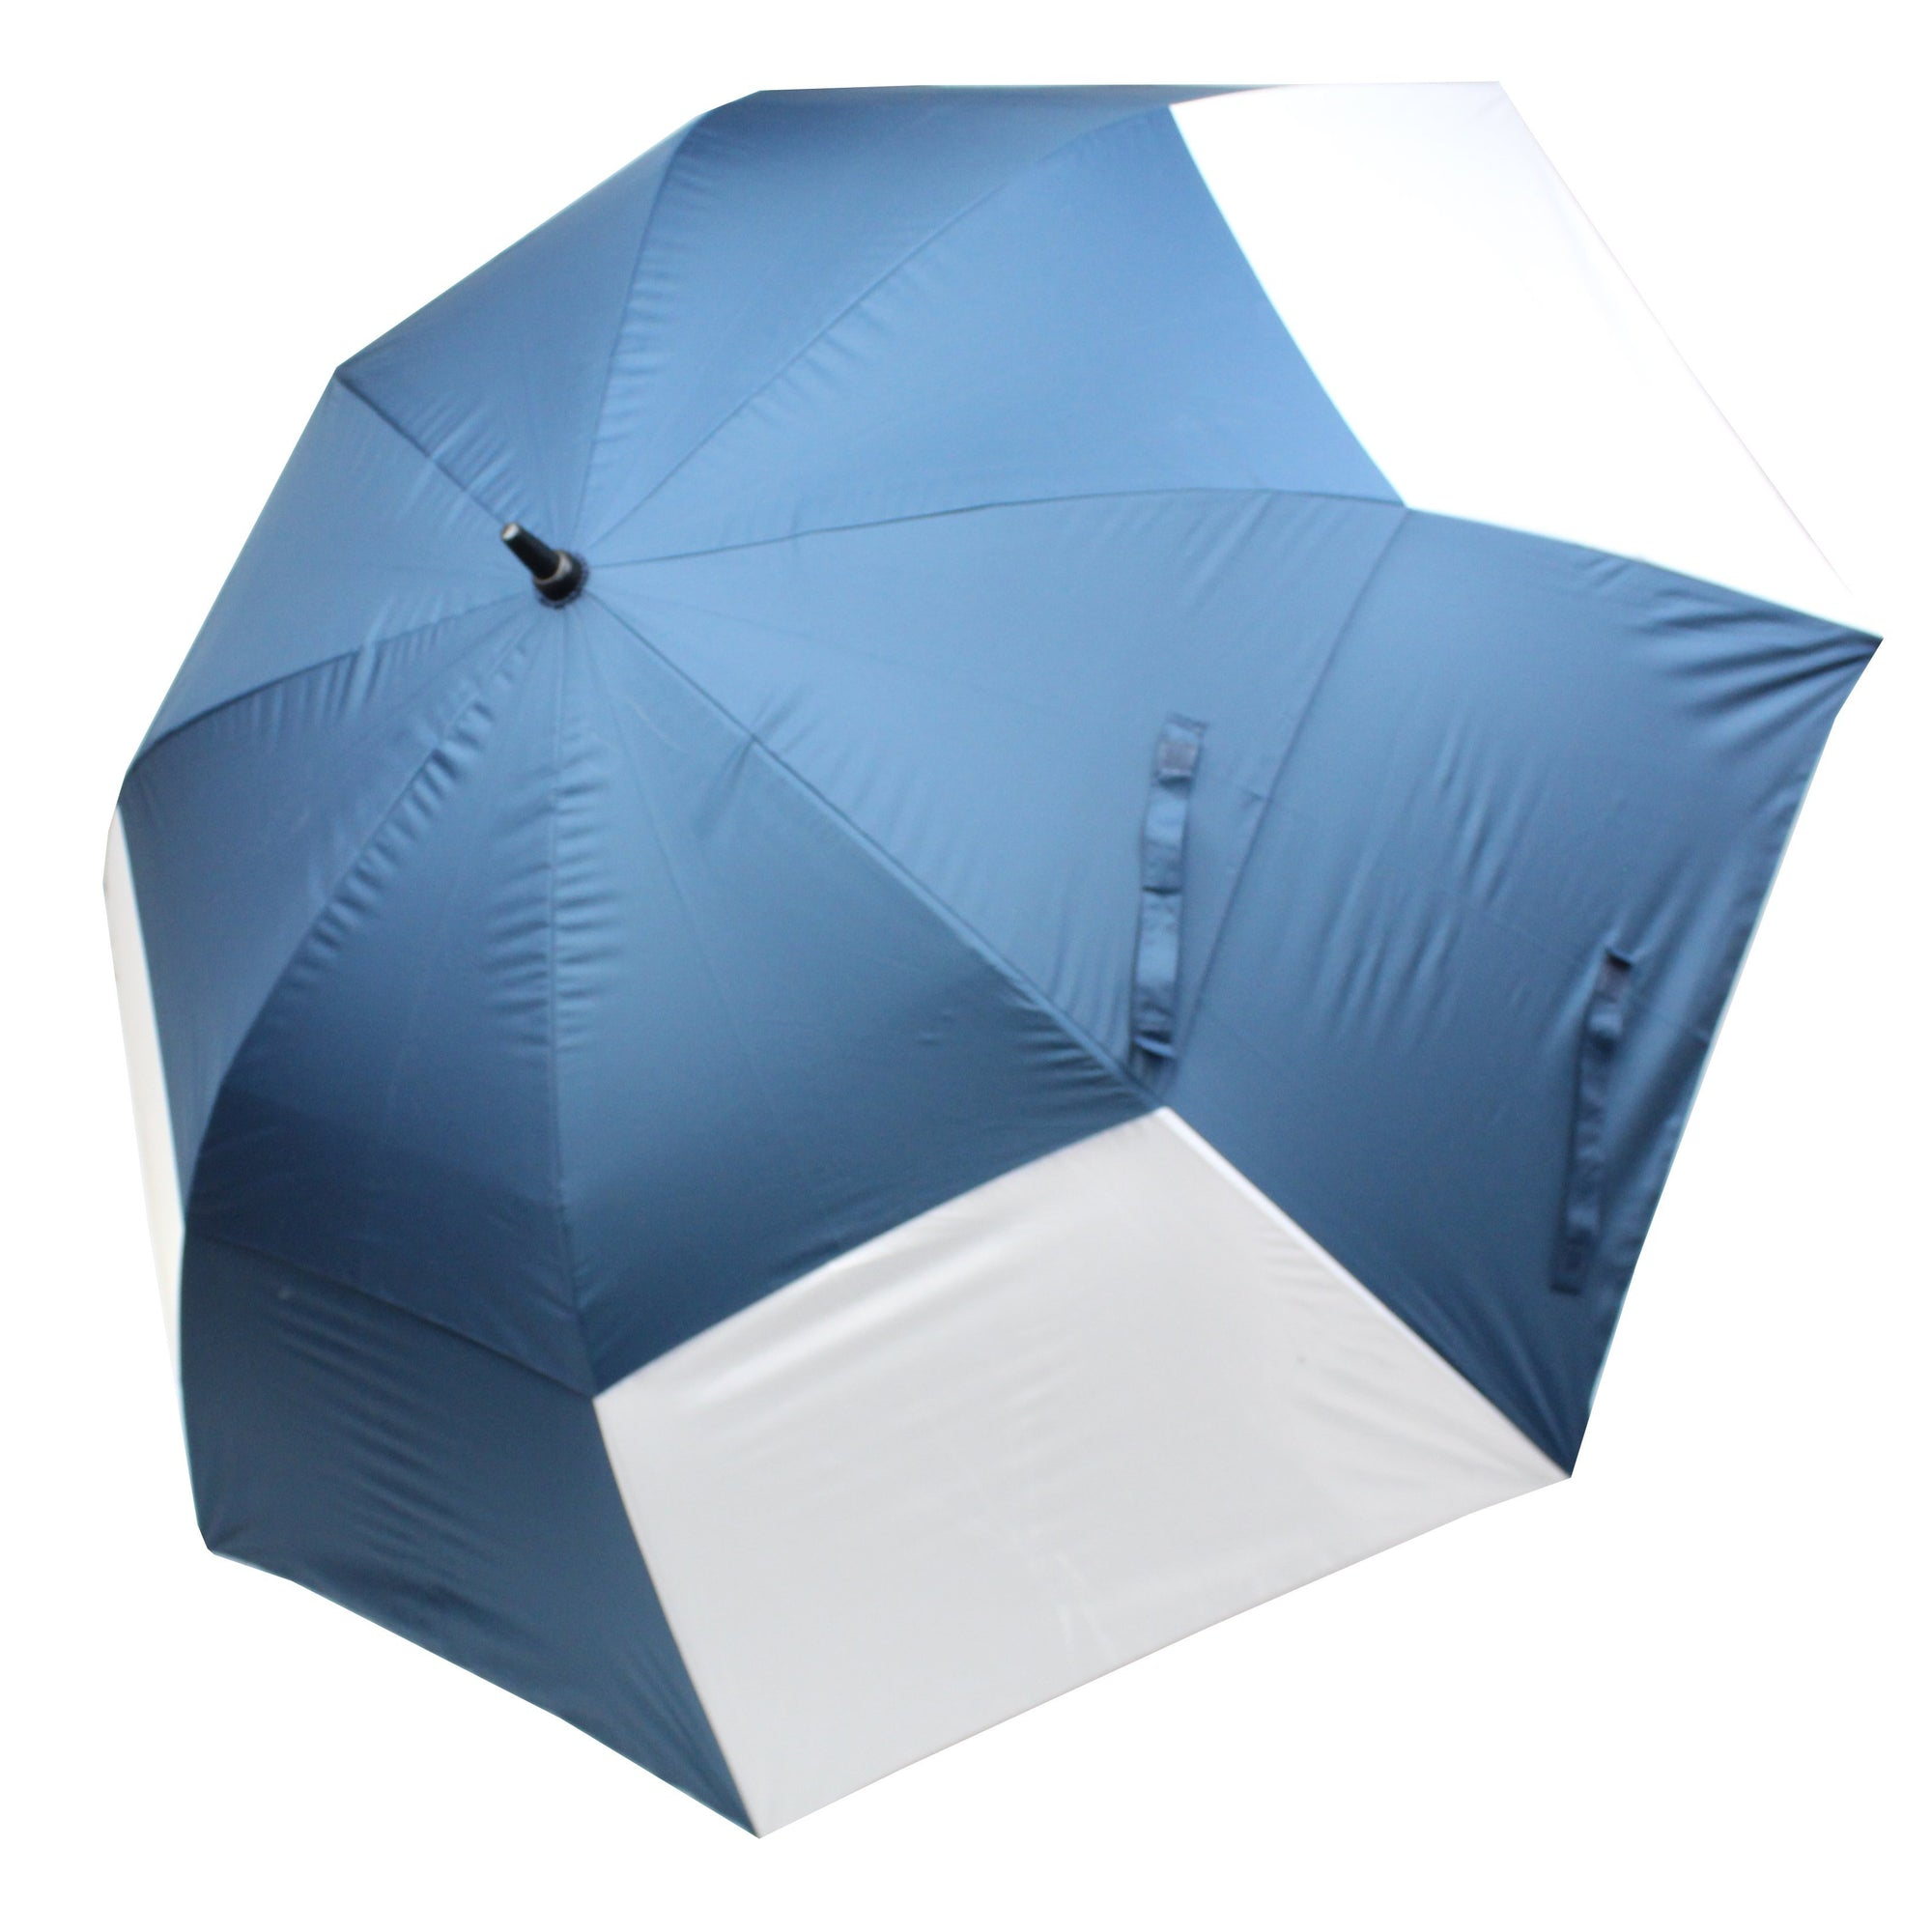 Druids Golf - Crested Double Canopy Corporate Umbrella (Navy)